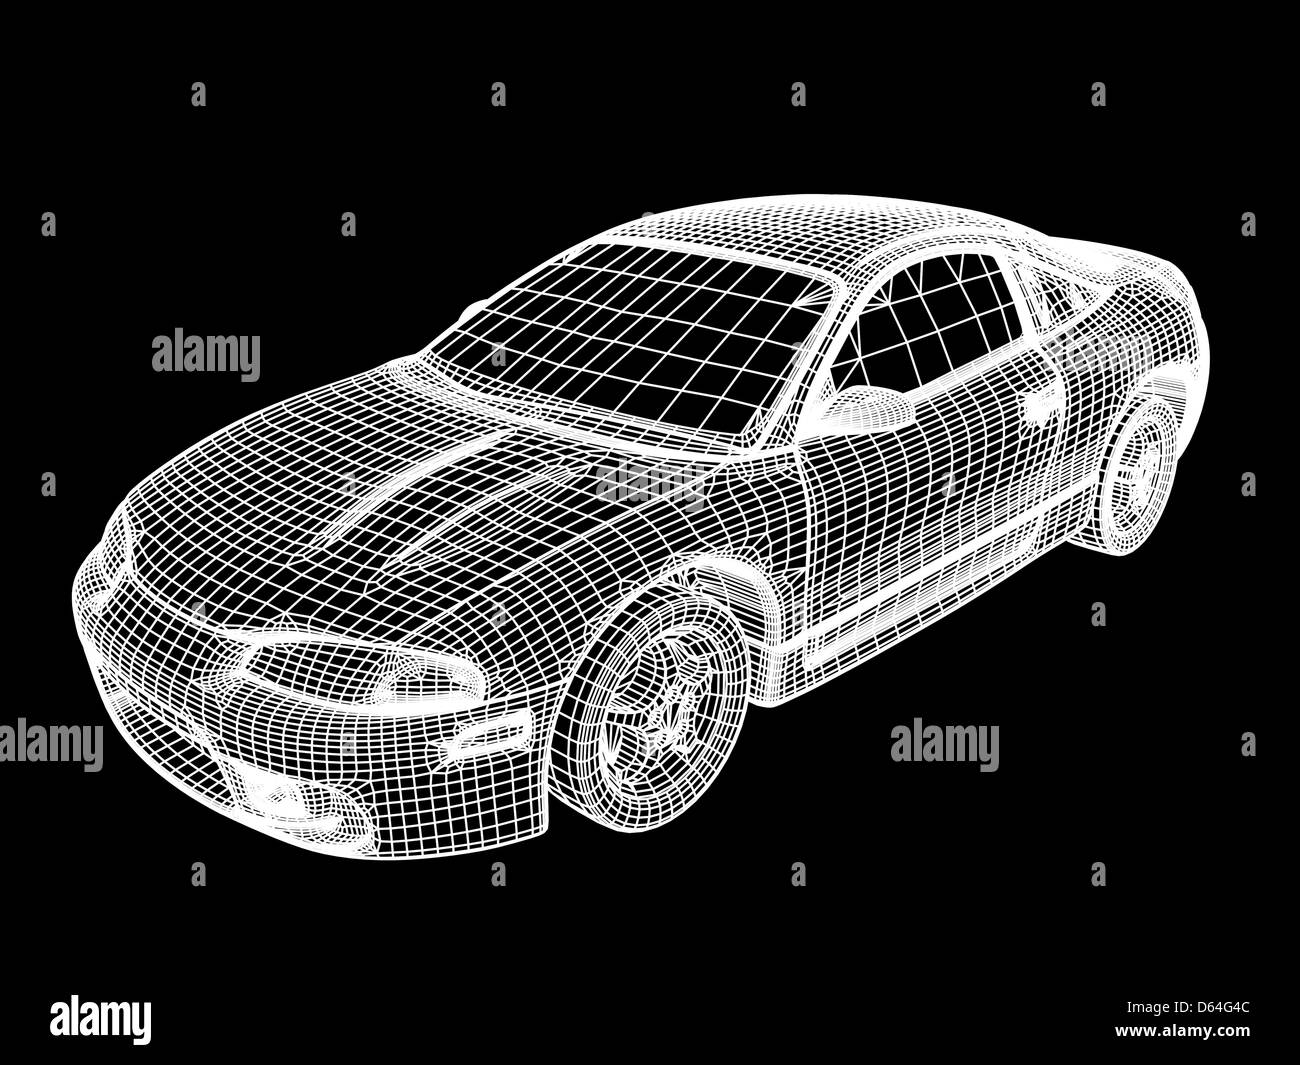 computeraided design of a car stock photo royalty free